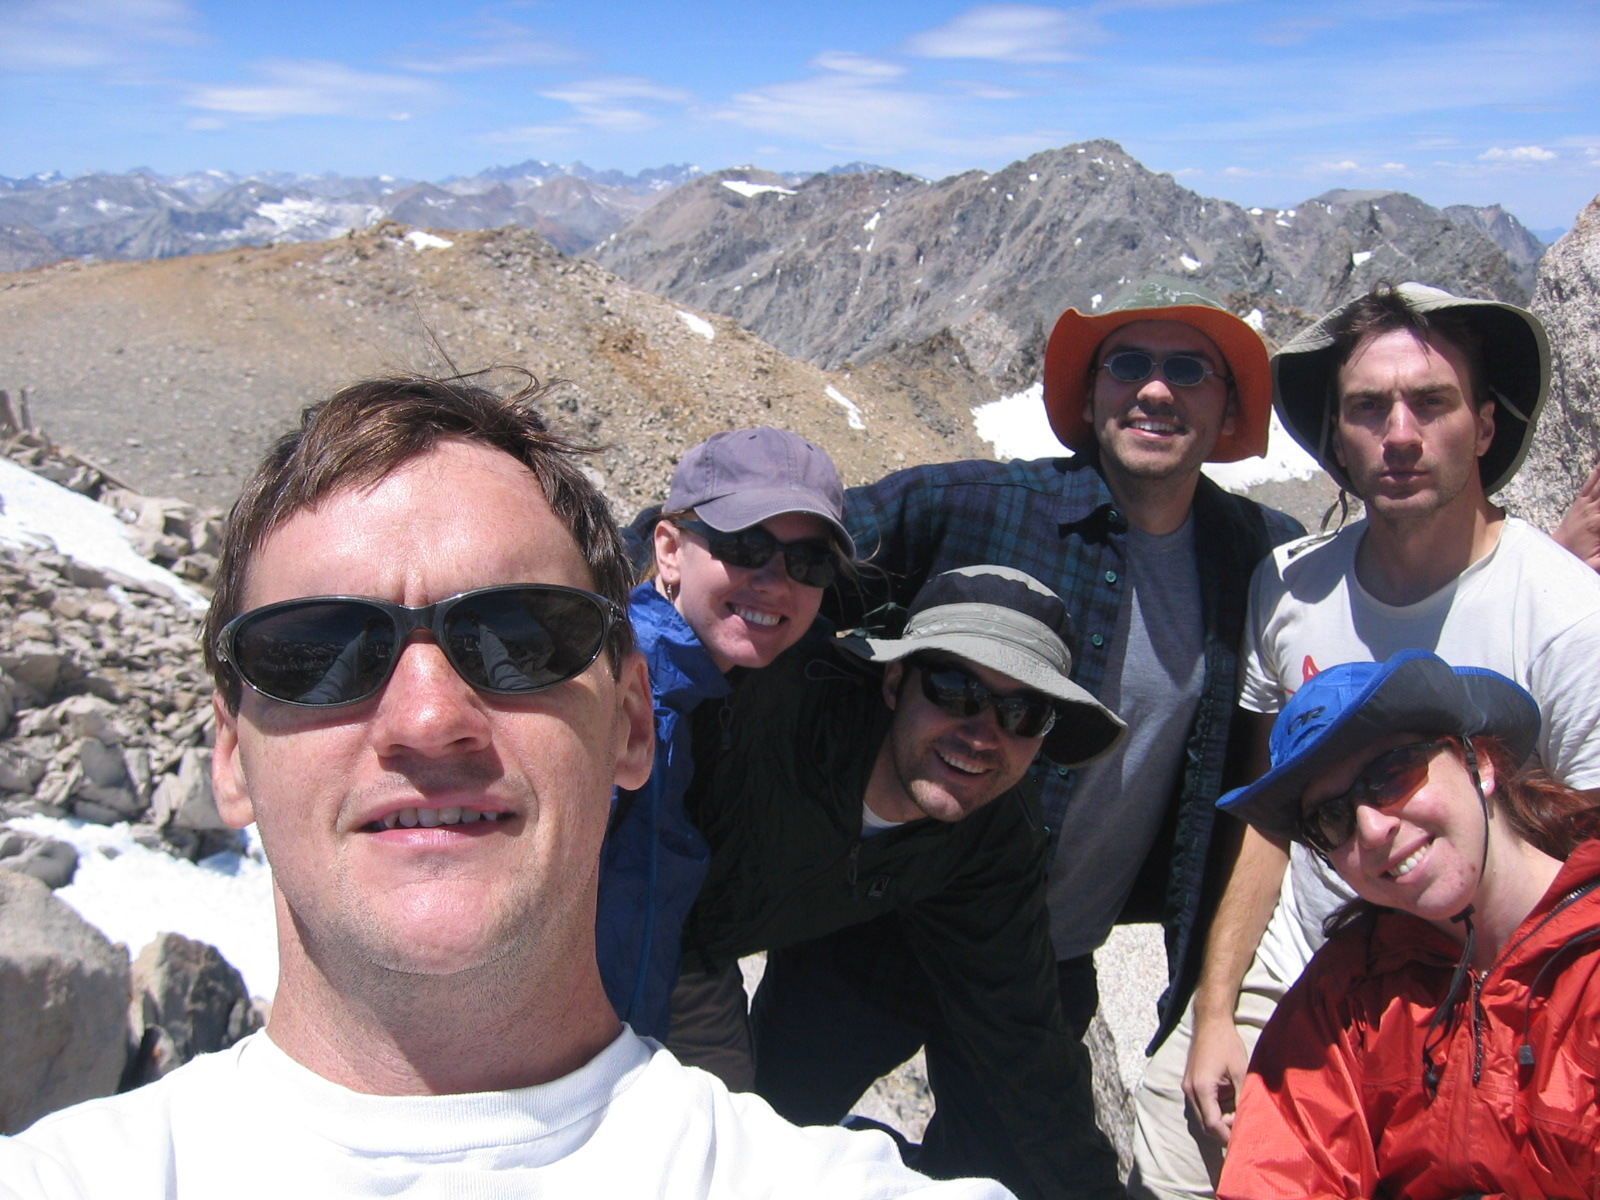 Summit of Mt. Gould (13,005 ft) Group Shot